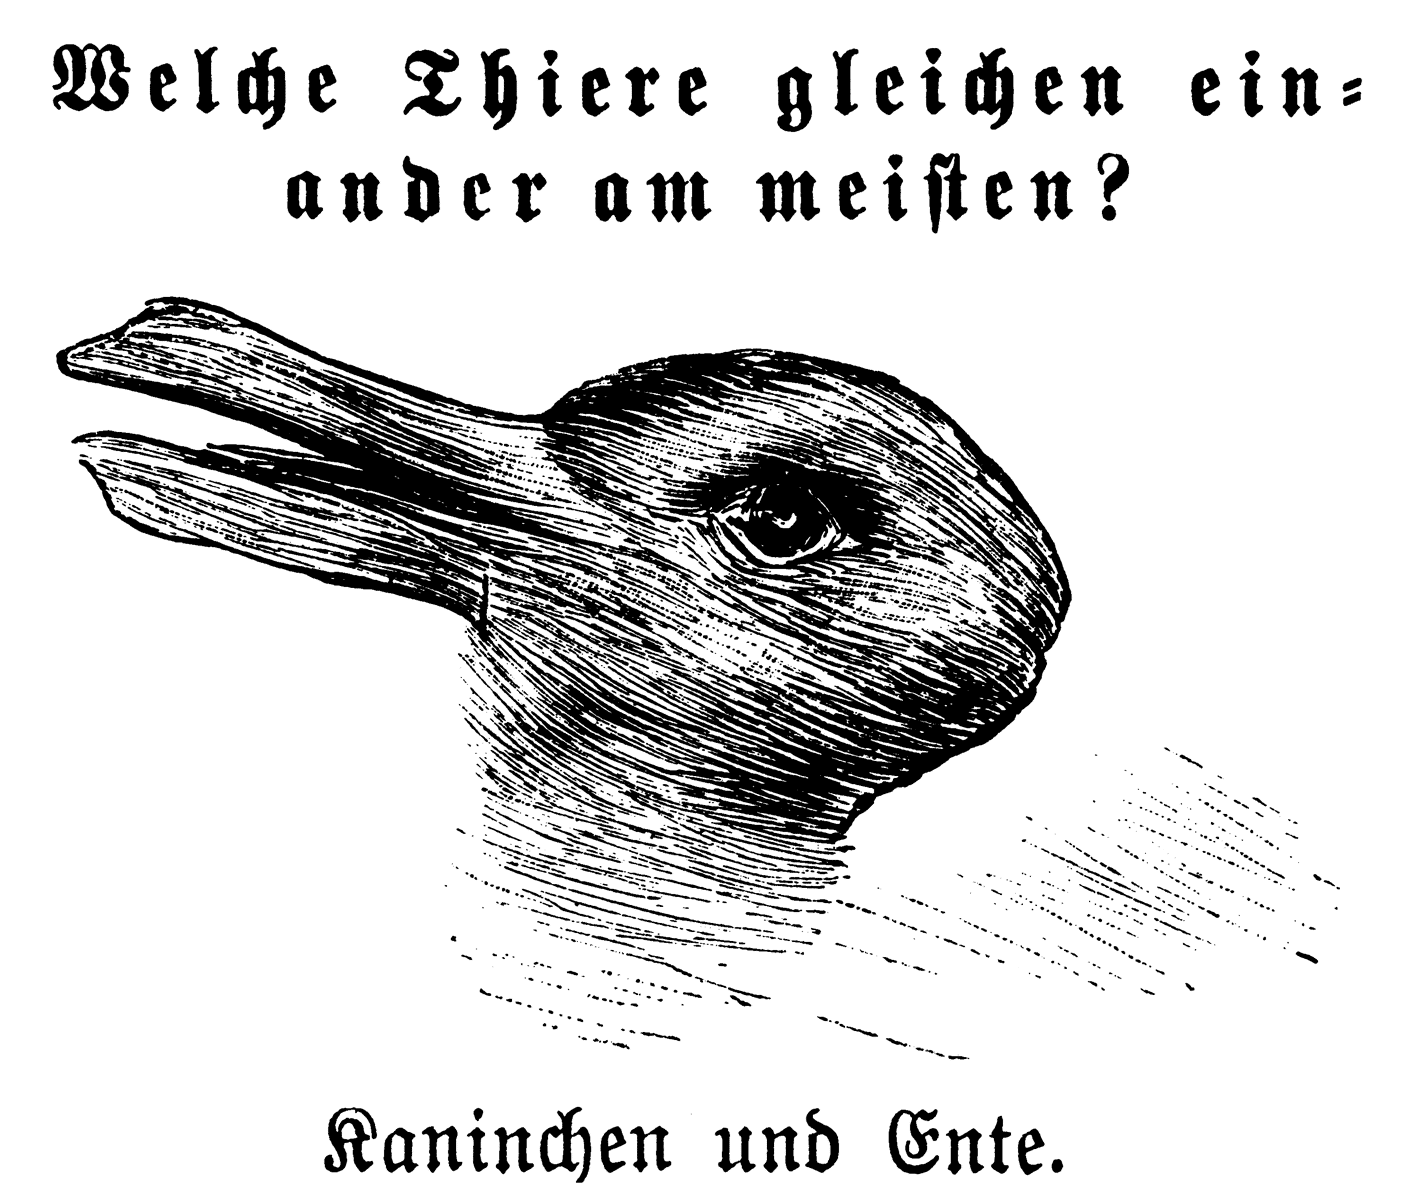 Salvēte!: Duck or rabbit?